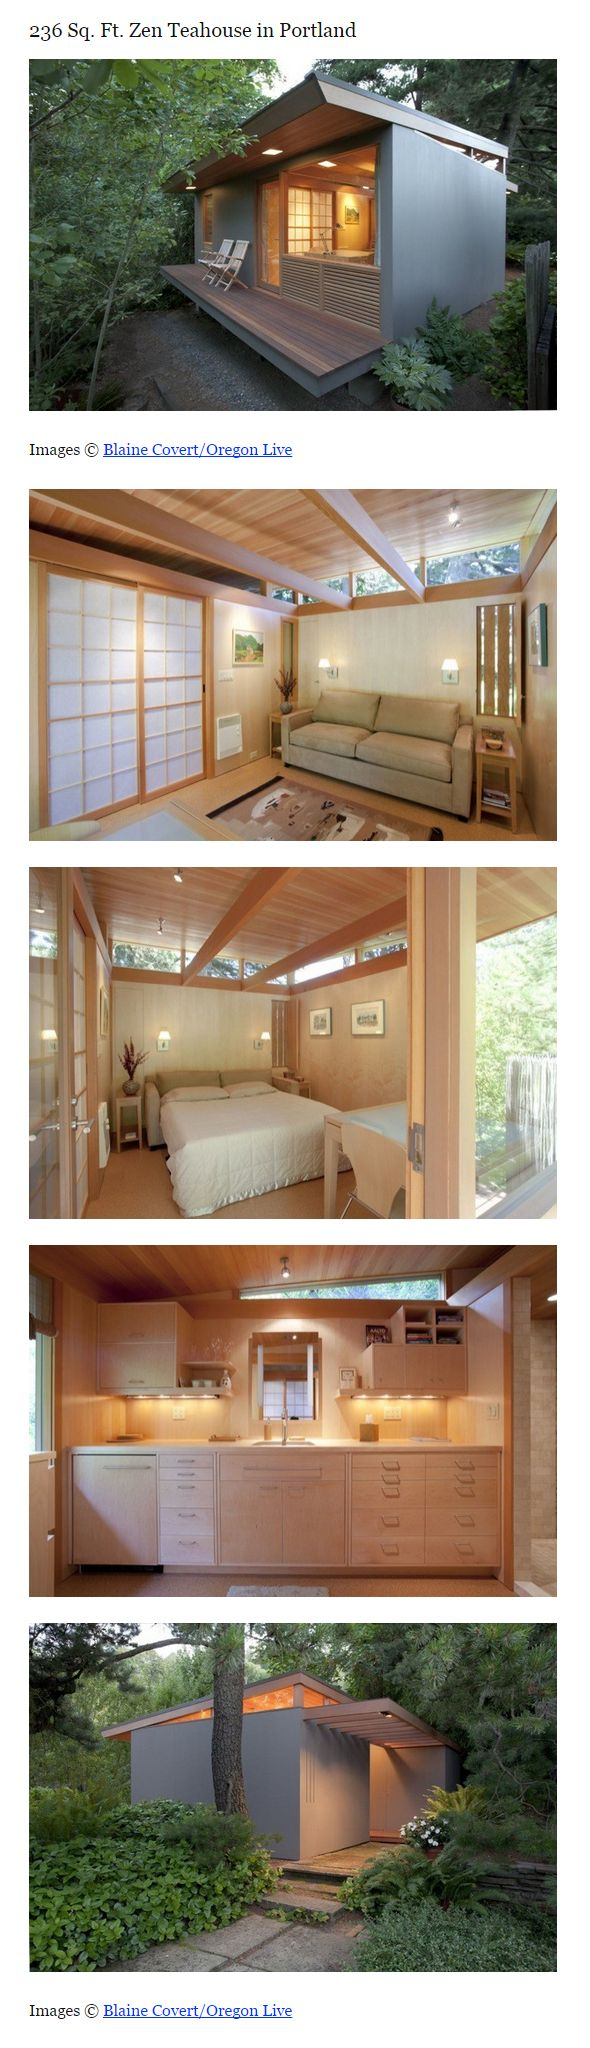 236 Sq. Ft. Zen Teahouse in Portland Read more at http://tinyhousetalk.com/236-sq-ft-zen-teahouse-in-portland/#WshEbWrCOfitr5GY.99